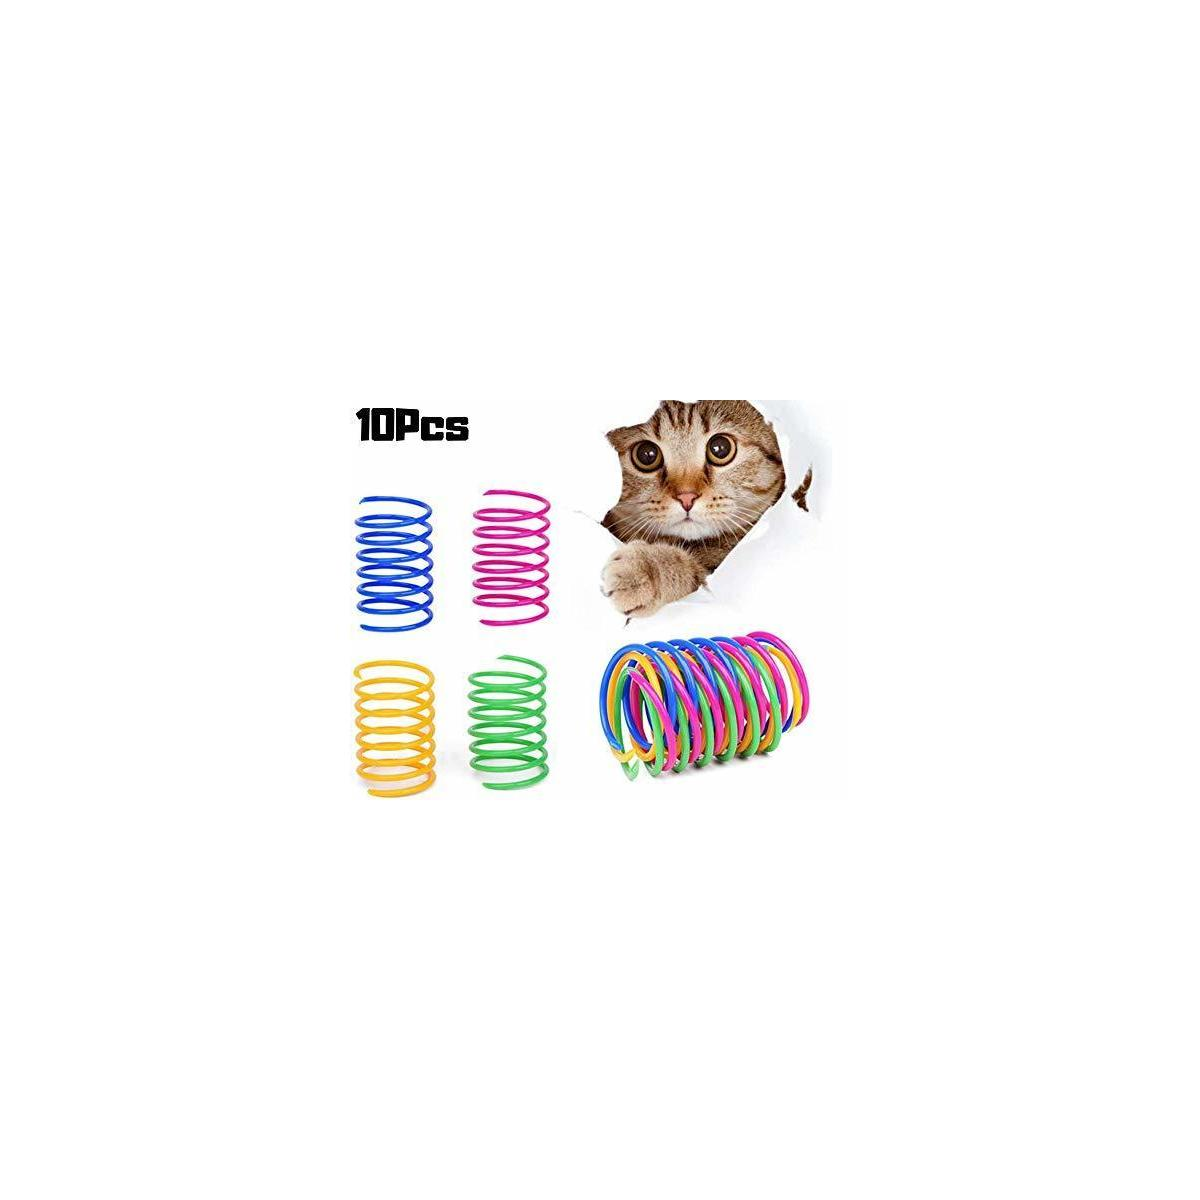 Cat Spring Toy Plastic Colorful Coil Spiral Springs Pet Action Wide Durable Interactive Toys 10pcs